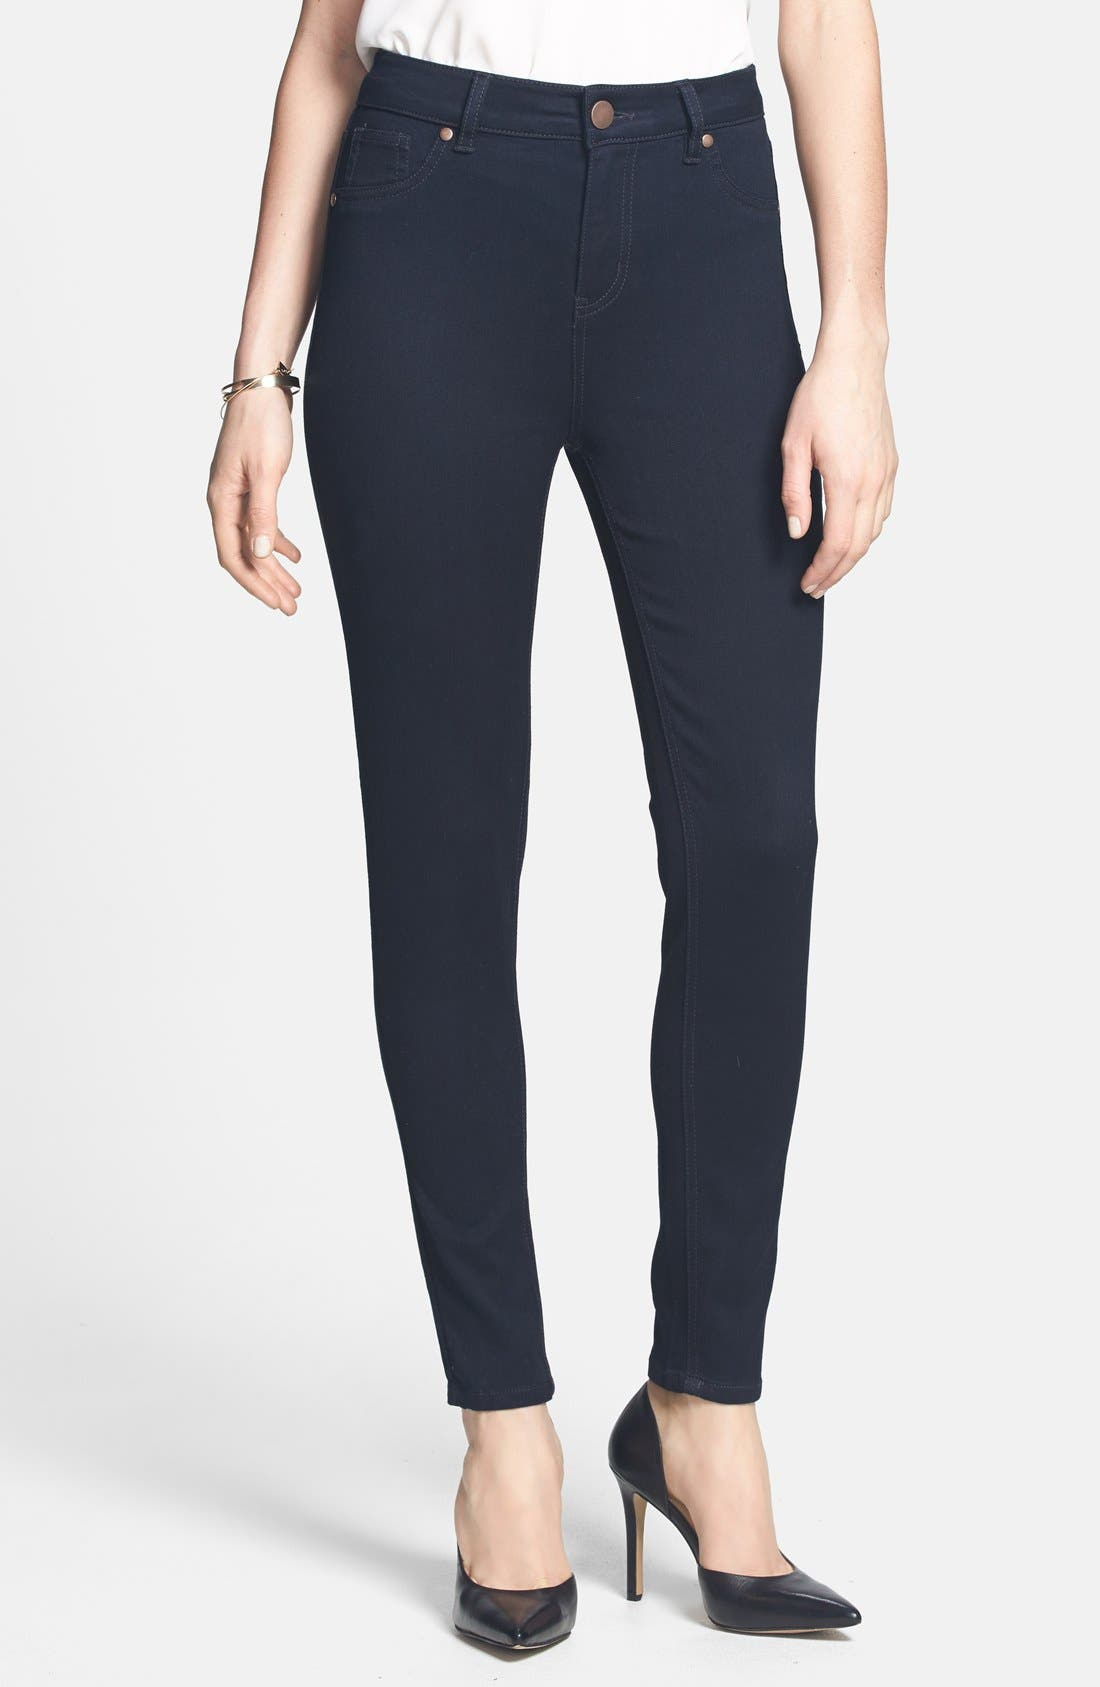 Main Image - Fire 'The 10' High Waist Skinny Jeans (Dark Wash) (Juniors) (Online Only)